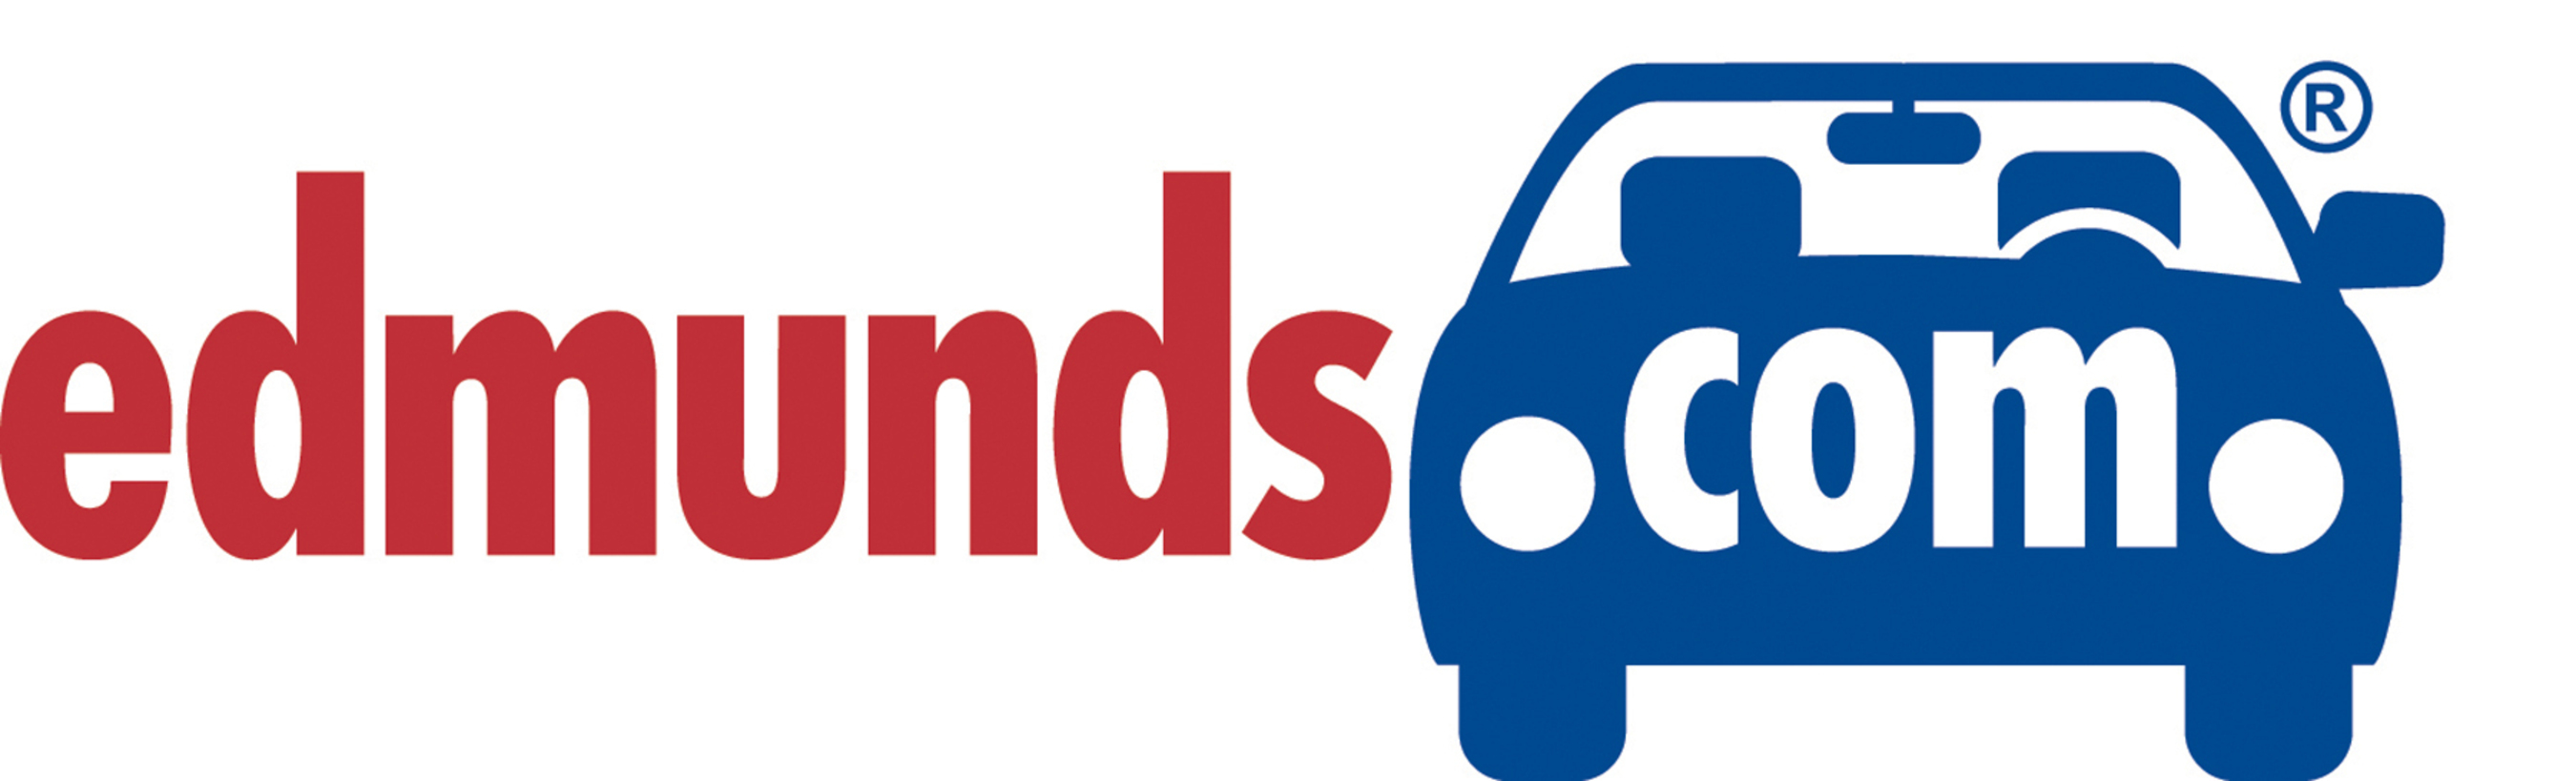 leasing certified pre owned vehicles propel used car sales continuing record breaking pattern reports edmunds